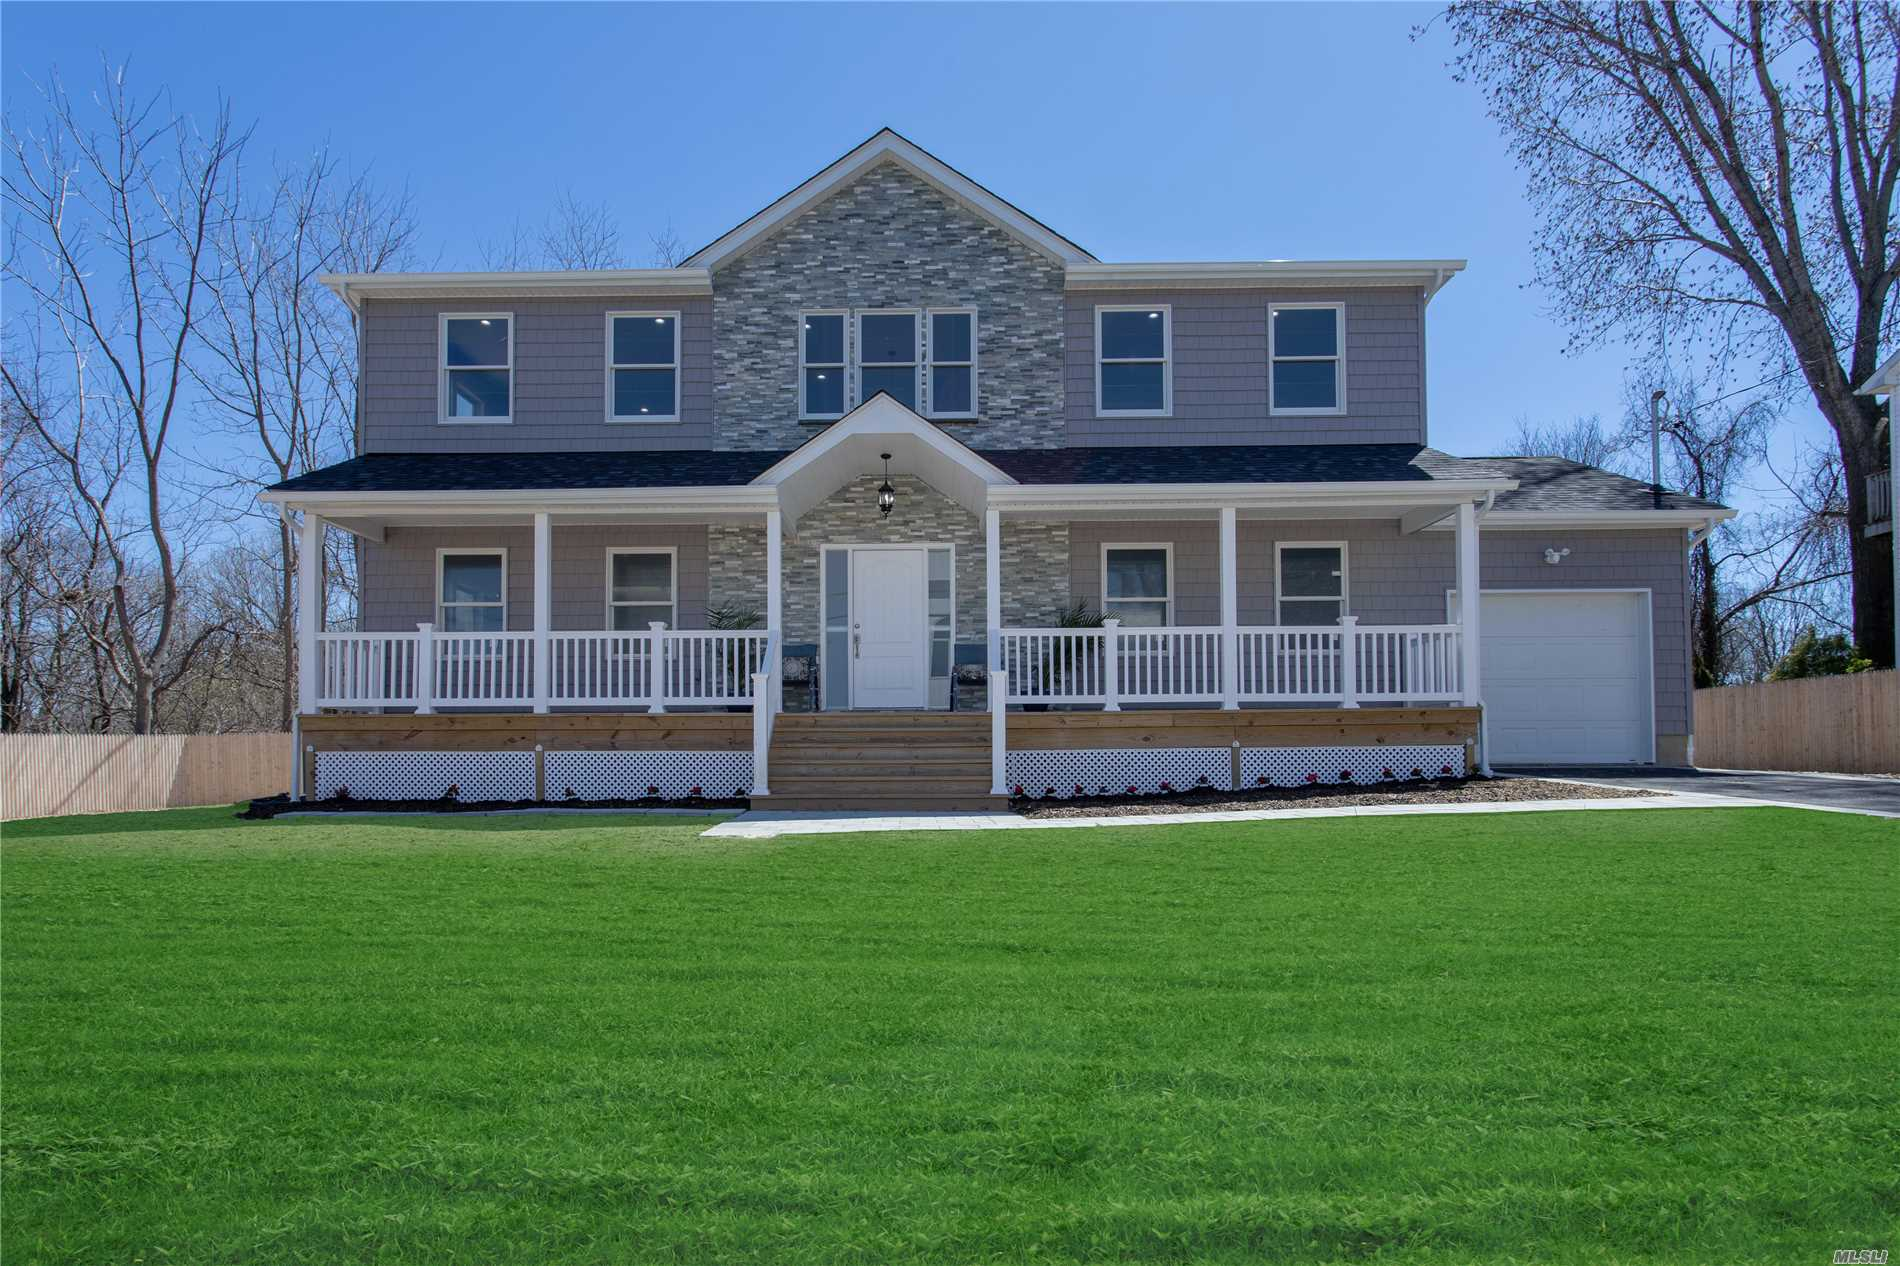 Welcome Home! Absolutely Stunning Brand NEW CONSTRUCTION Colonial 4 Spacious Bedrooms & 2.5 Baths. Open Concept Design, High End Finishes, Gorgeous Hardwood Floors Throughout, Scenic Winter Waterview. Stunning White Center Island Kitchen With Quartz Counter Tops, Stainless Steel Appliances & Backsplash. First Floor Media/5th Bedroom Plumbing For 4th Bath. Grand Master Suite With Elegant Soaking Tub & Walk In Shower, Situated On A .25 Acre Backs Park Privacy! Kings Park School District